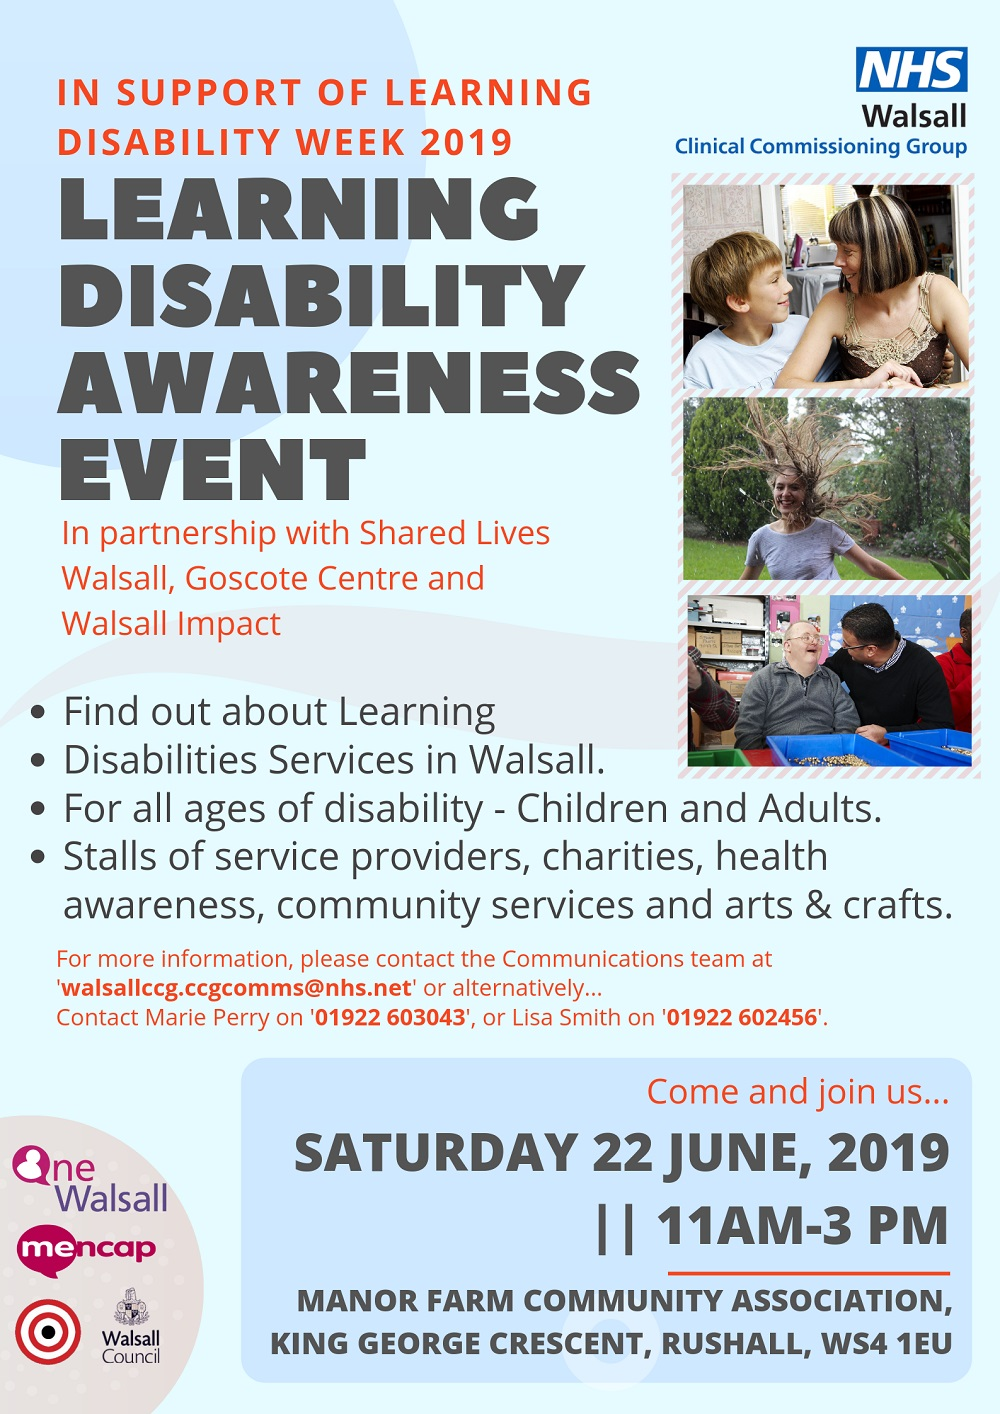 Learning disability event